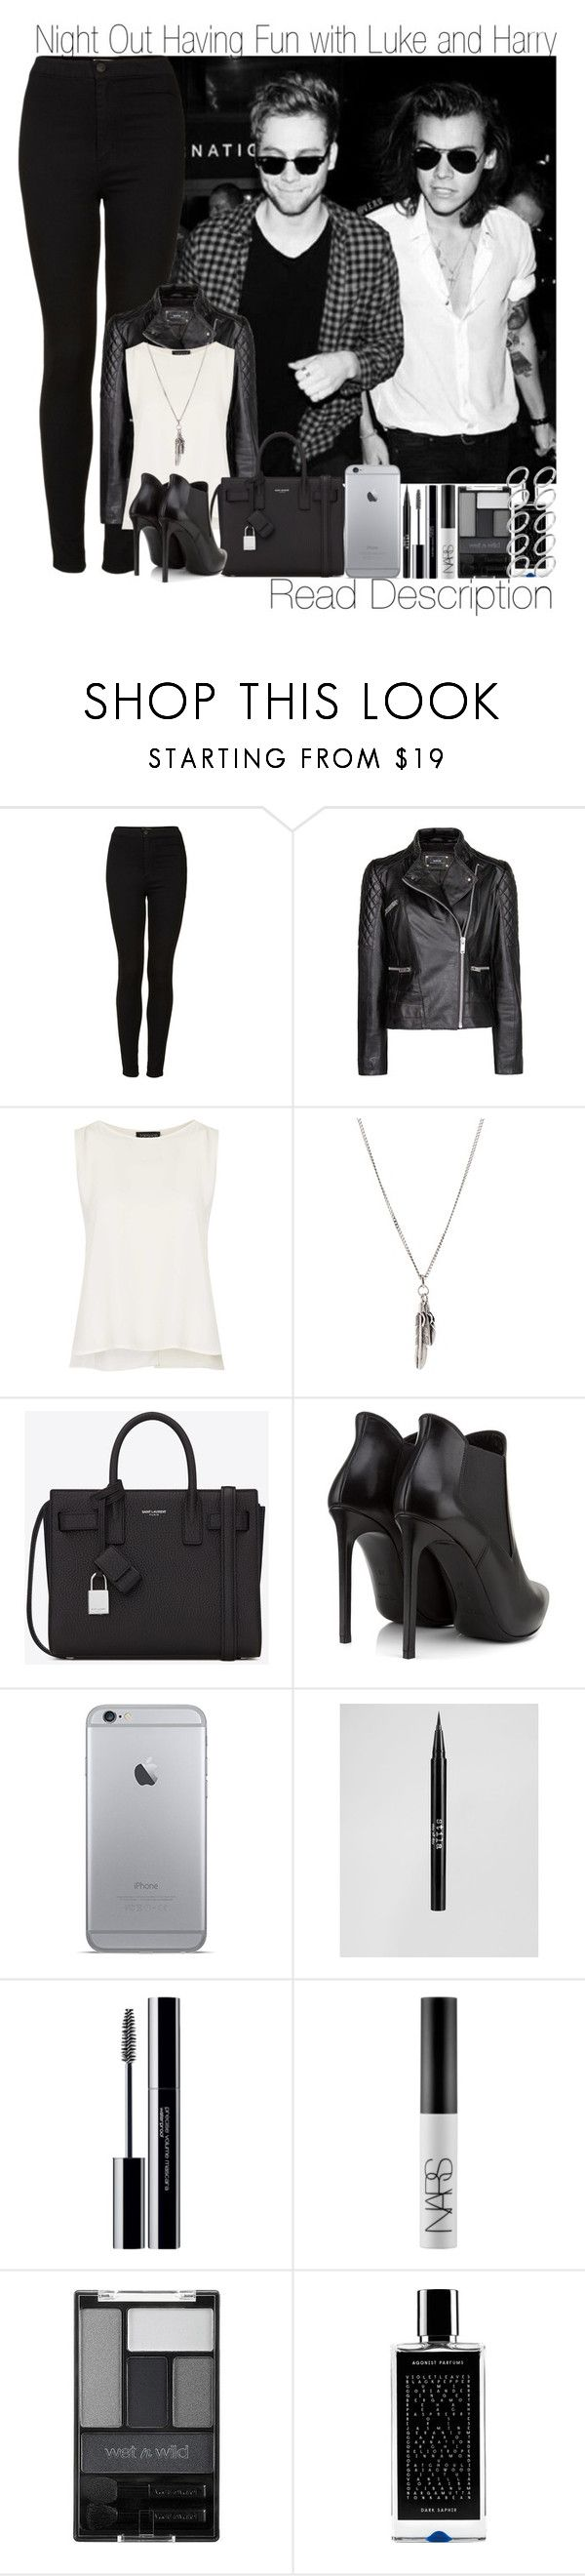 """""""IS 1D BREAKING UP?! Night Out Having Fun with Luke and Ashton"""" by elise-22 ❤ liked on Polyvore featuring Topshop, MANGO, Yves Saint Laurent, Stila, shu uemura, NARS Cosmetics, Wet n Wild, Agonist and ASOS"""